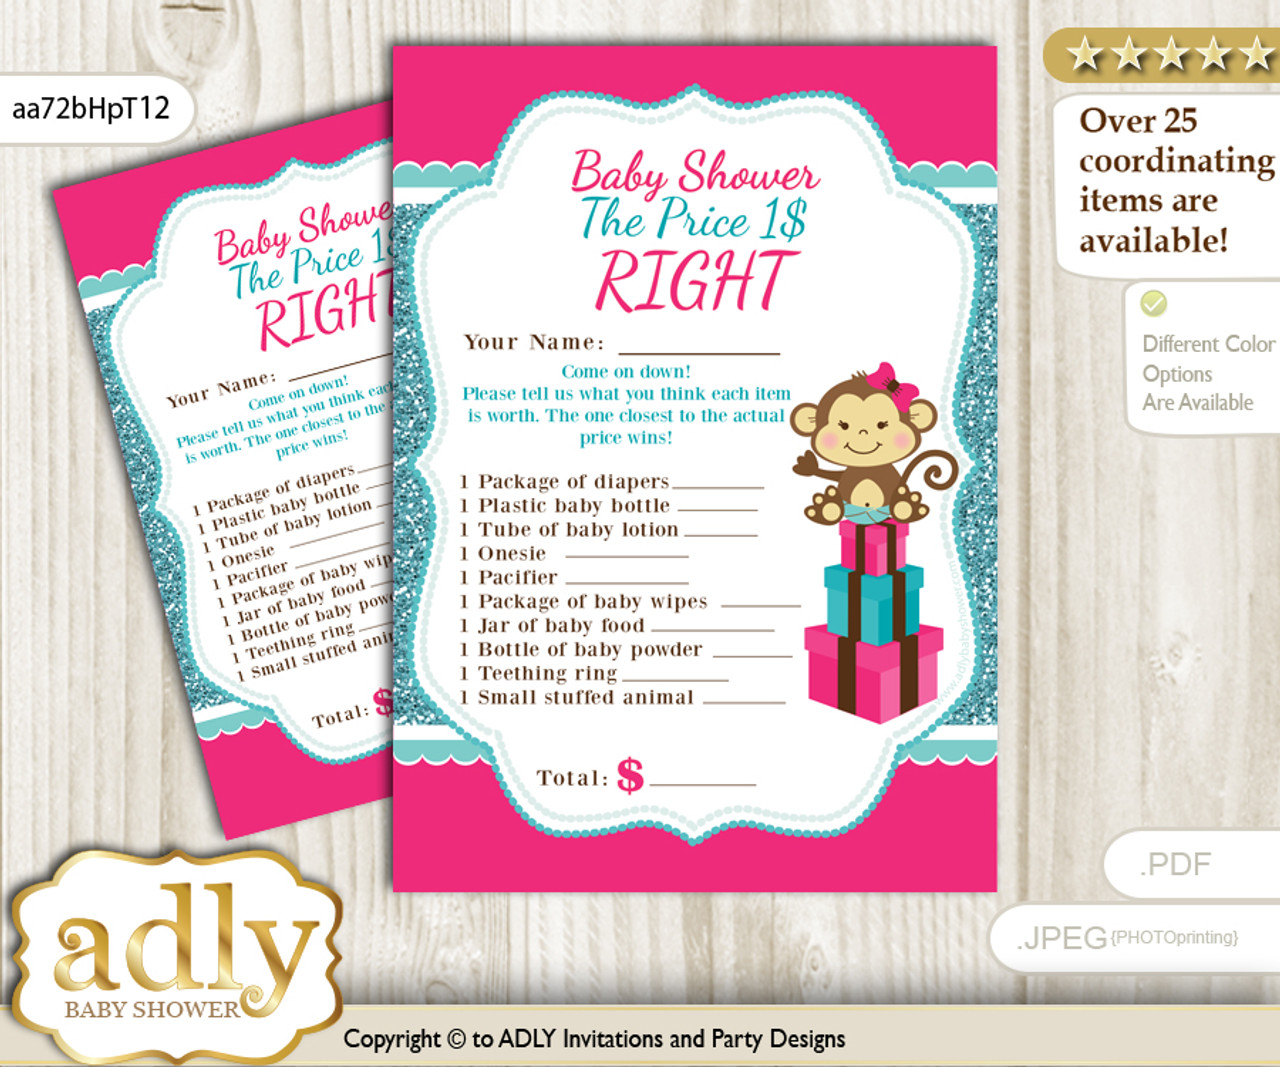 photograph about Baby Shower Price is Right Printable named Printable Woman Monkey Selling price is Immediately Sport Card for Boy or girl Monkey Shower, Incredibly hot Crimson, Glitter